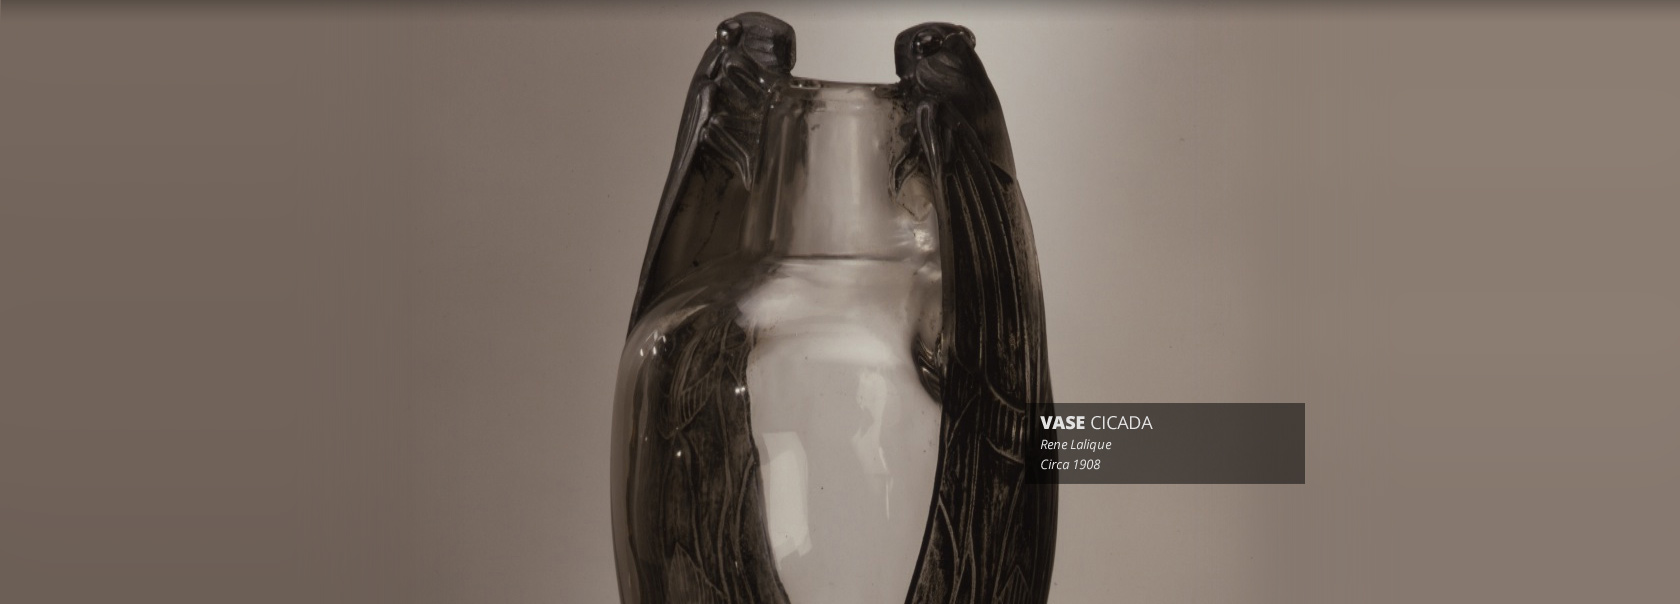 Vase Cicada by Rene Lalique